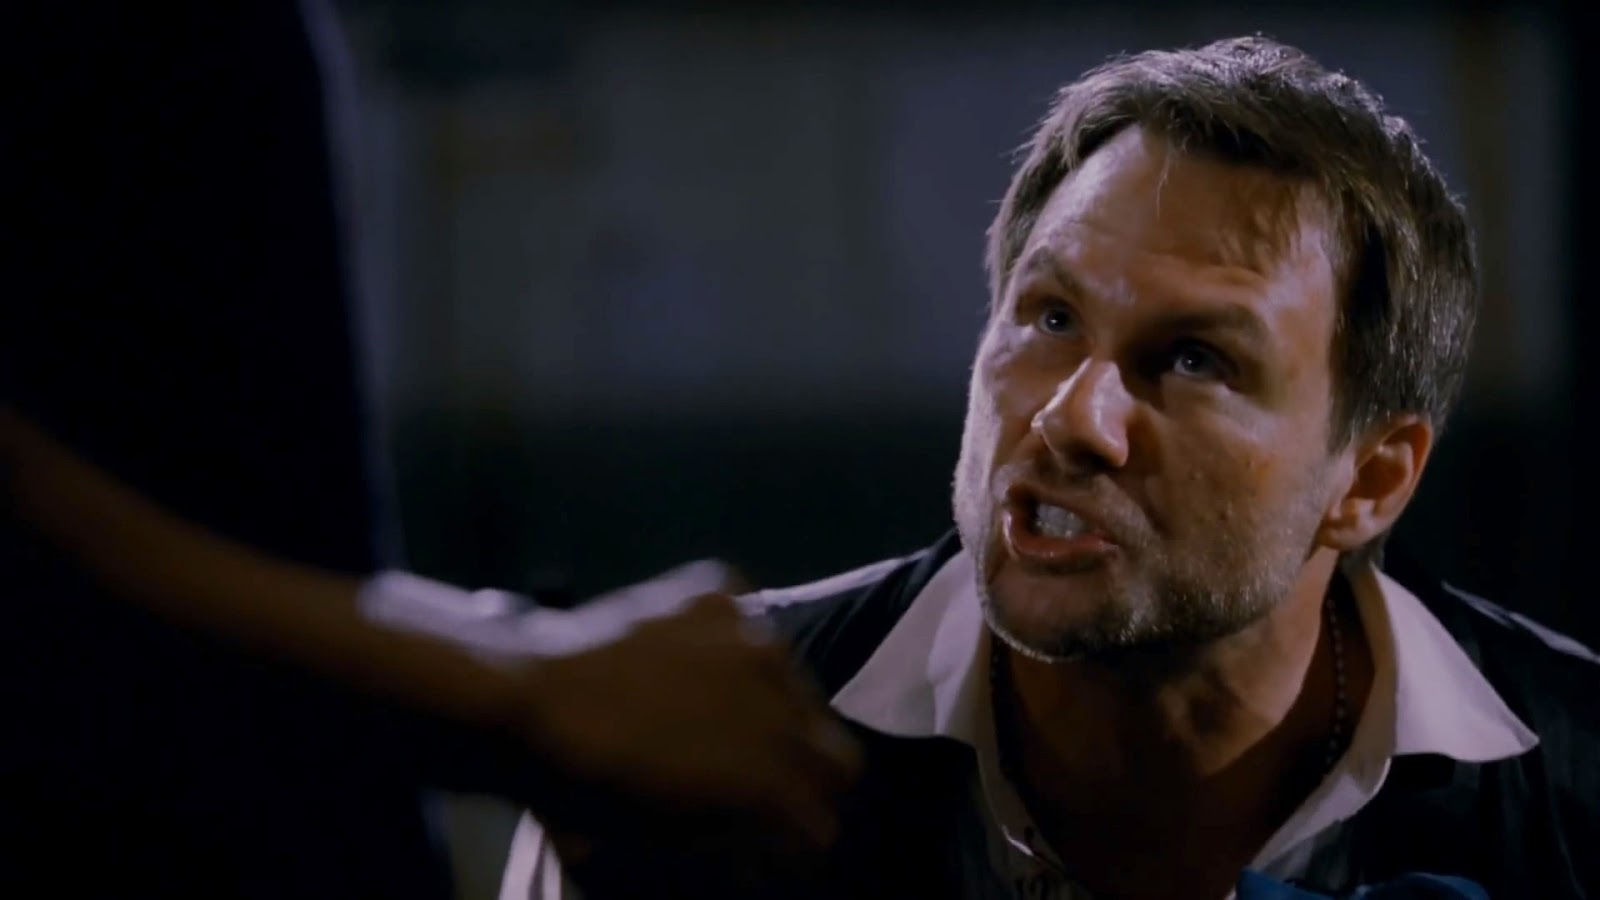 Bullet to the head - Christian Slater